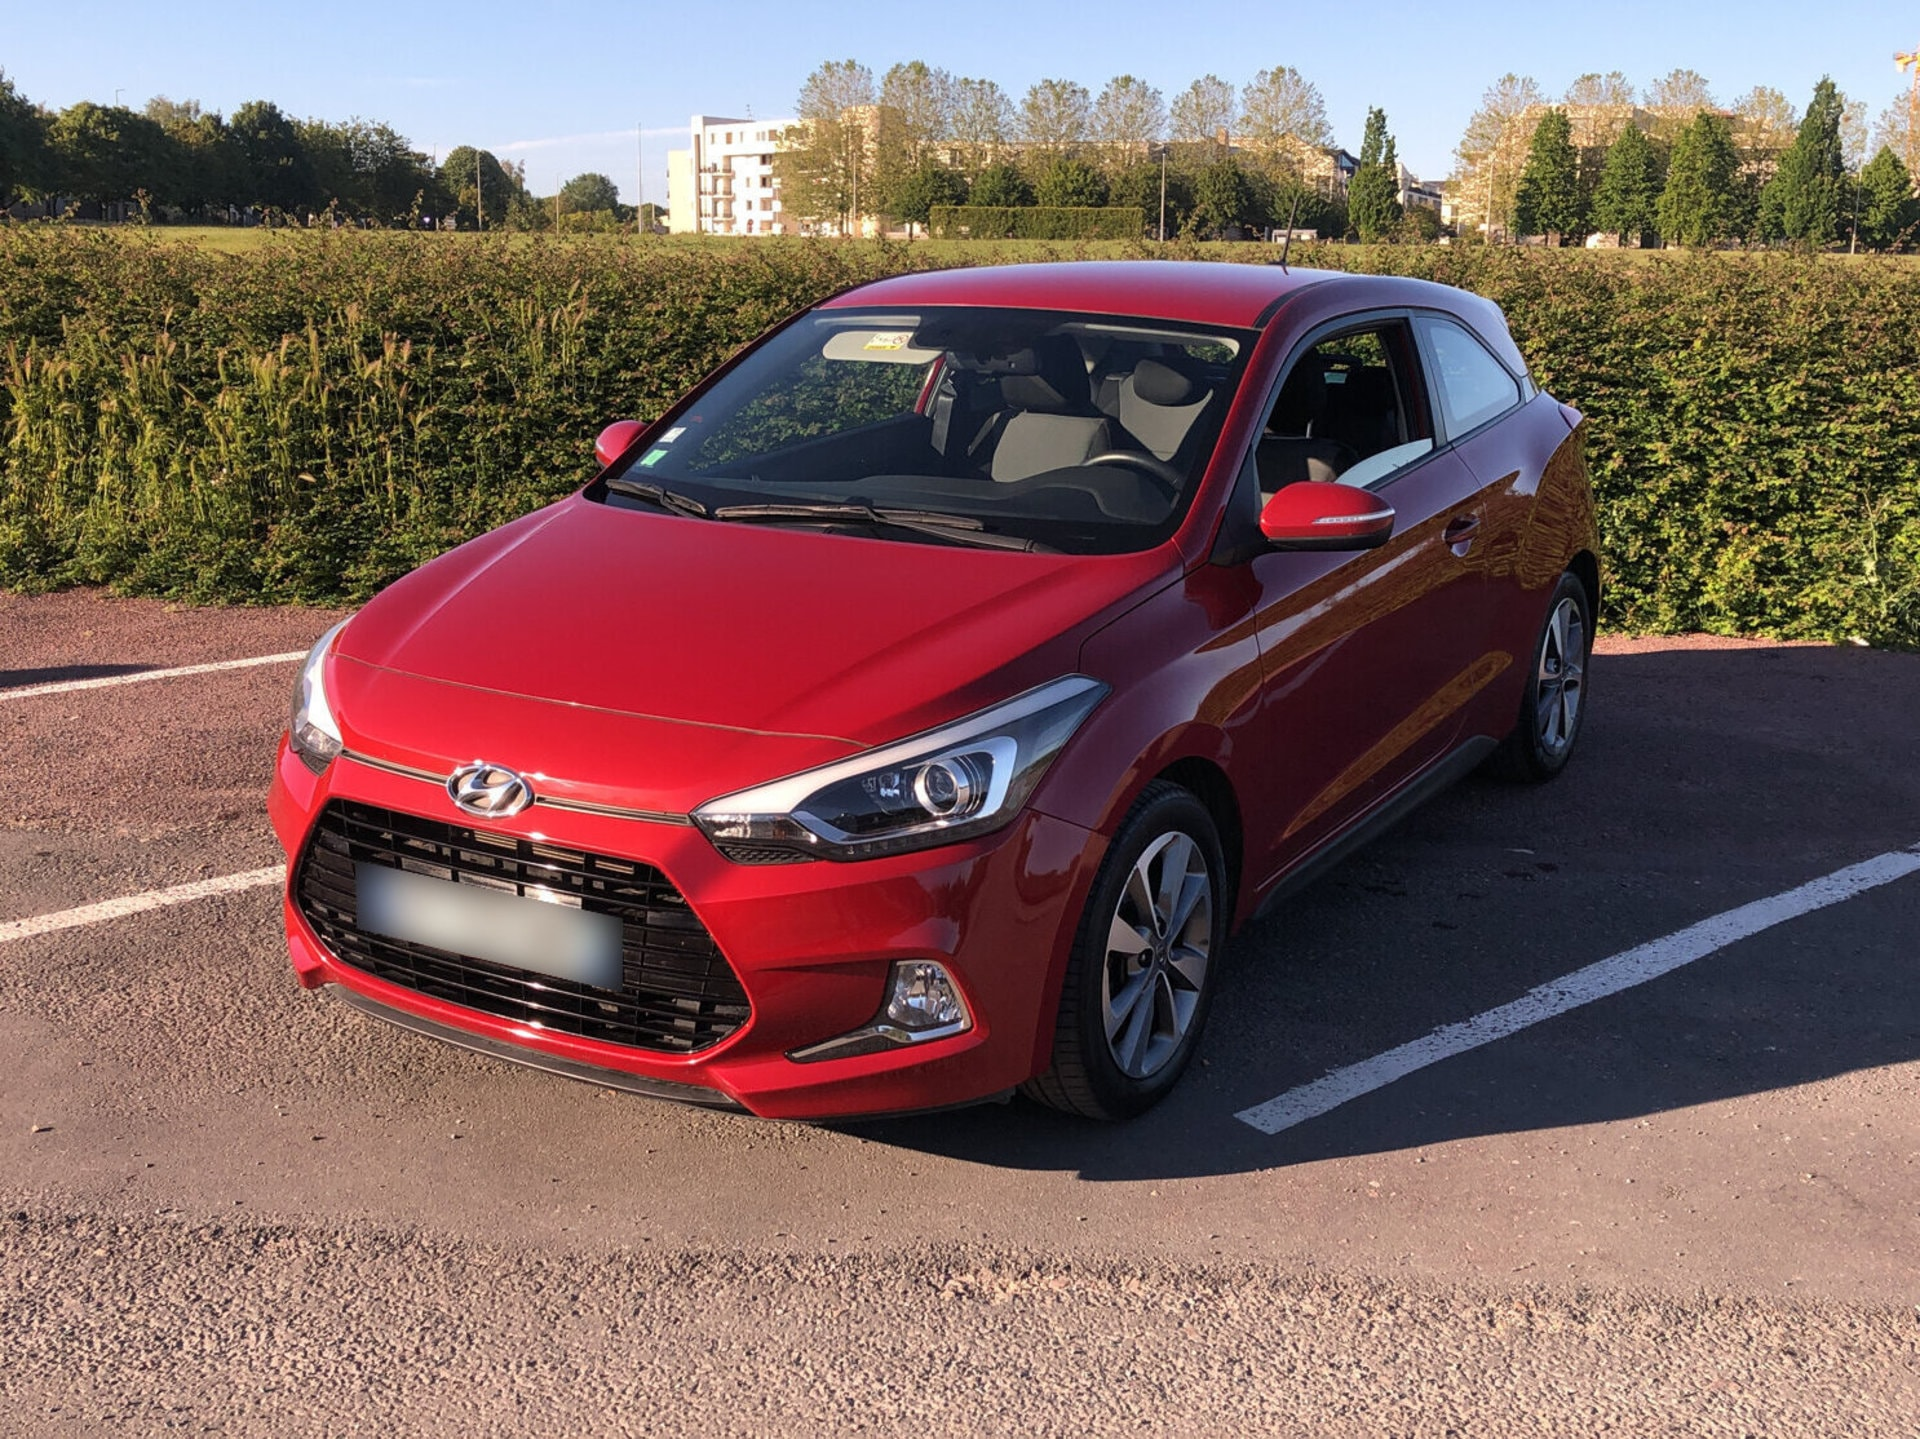 HYUNDAI I20 COUPE 1.0 T-GDI 100 INTUITIVE PLUS - Carventura